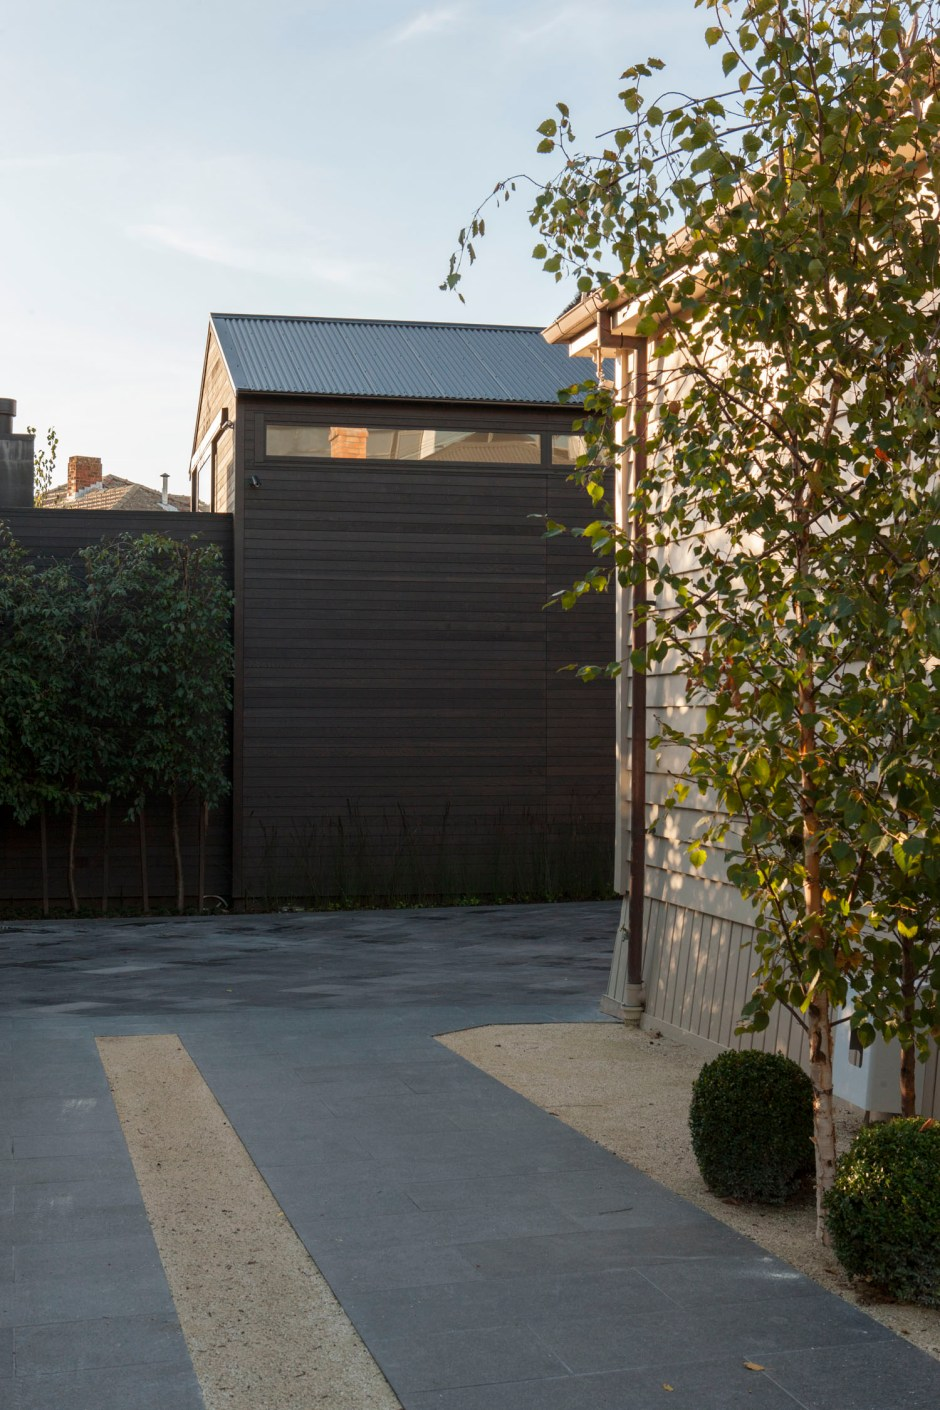 Richard Naish suburban house neighbour is renovated Victorian worker's cottage